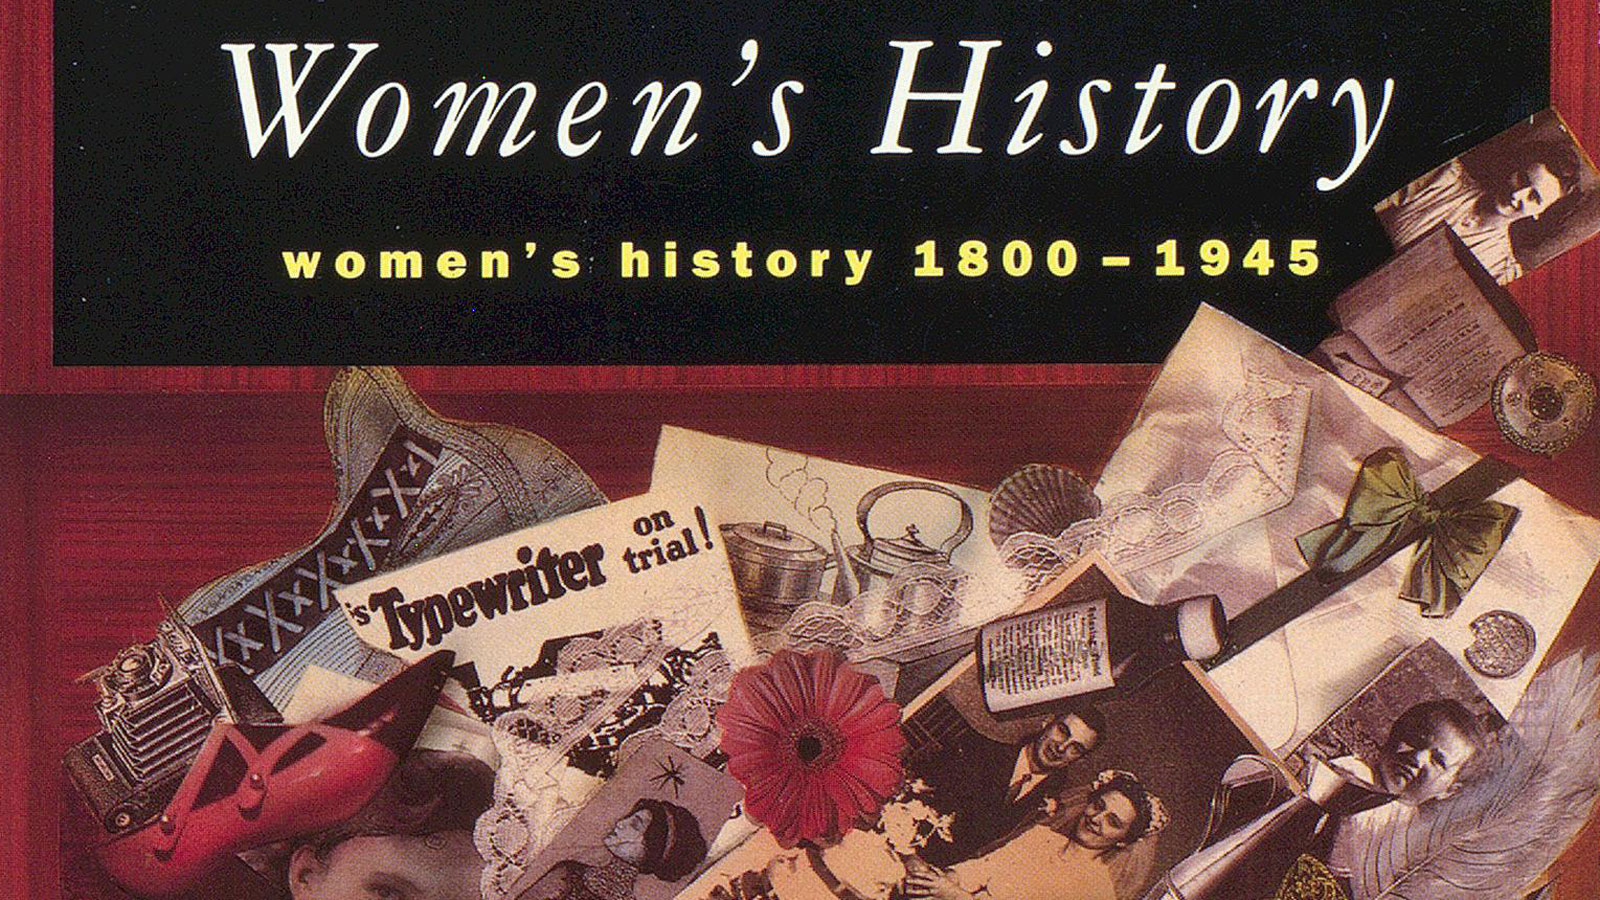 Women's Studies, Women's History and the Women's Liberation Movement